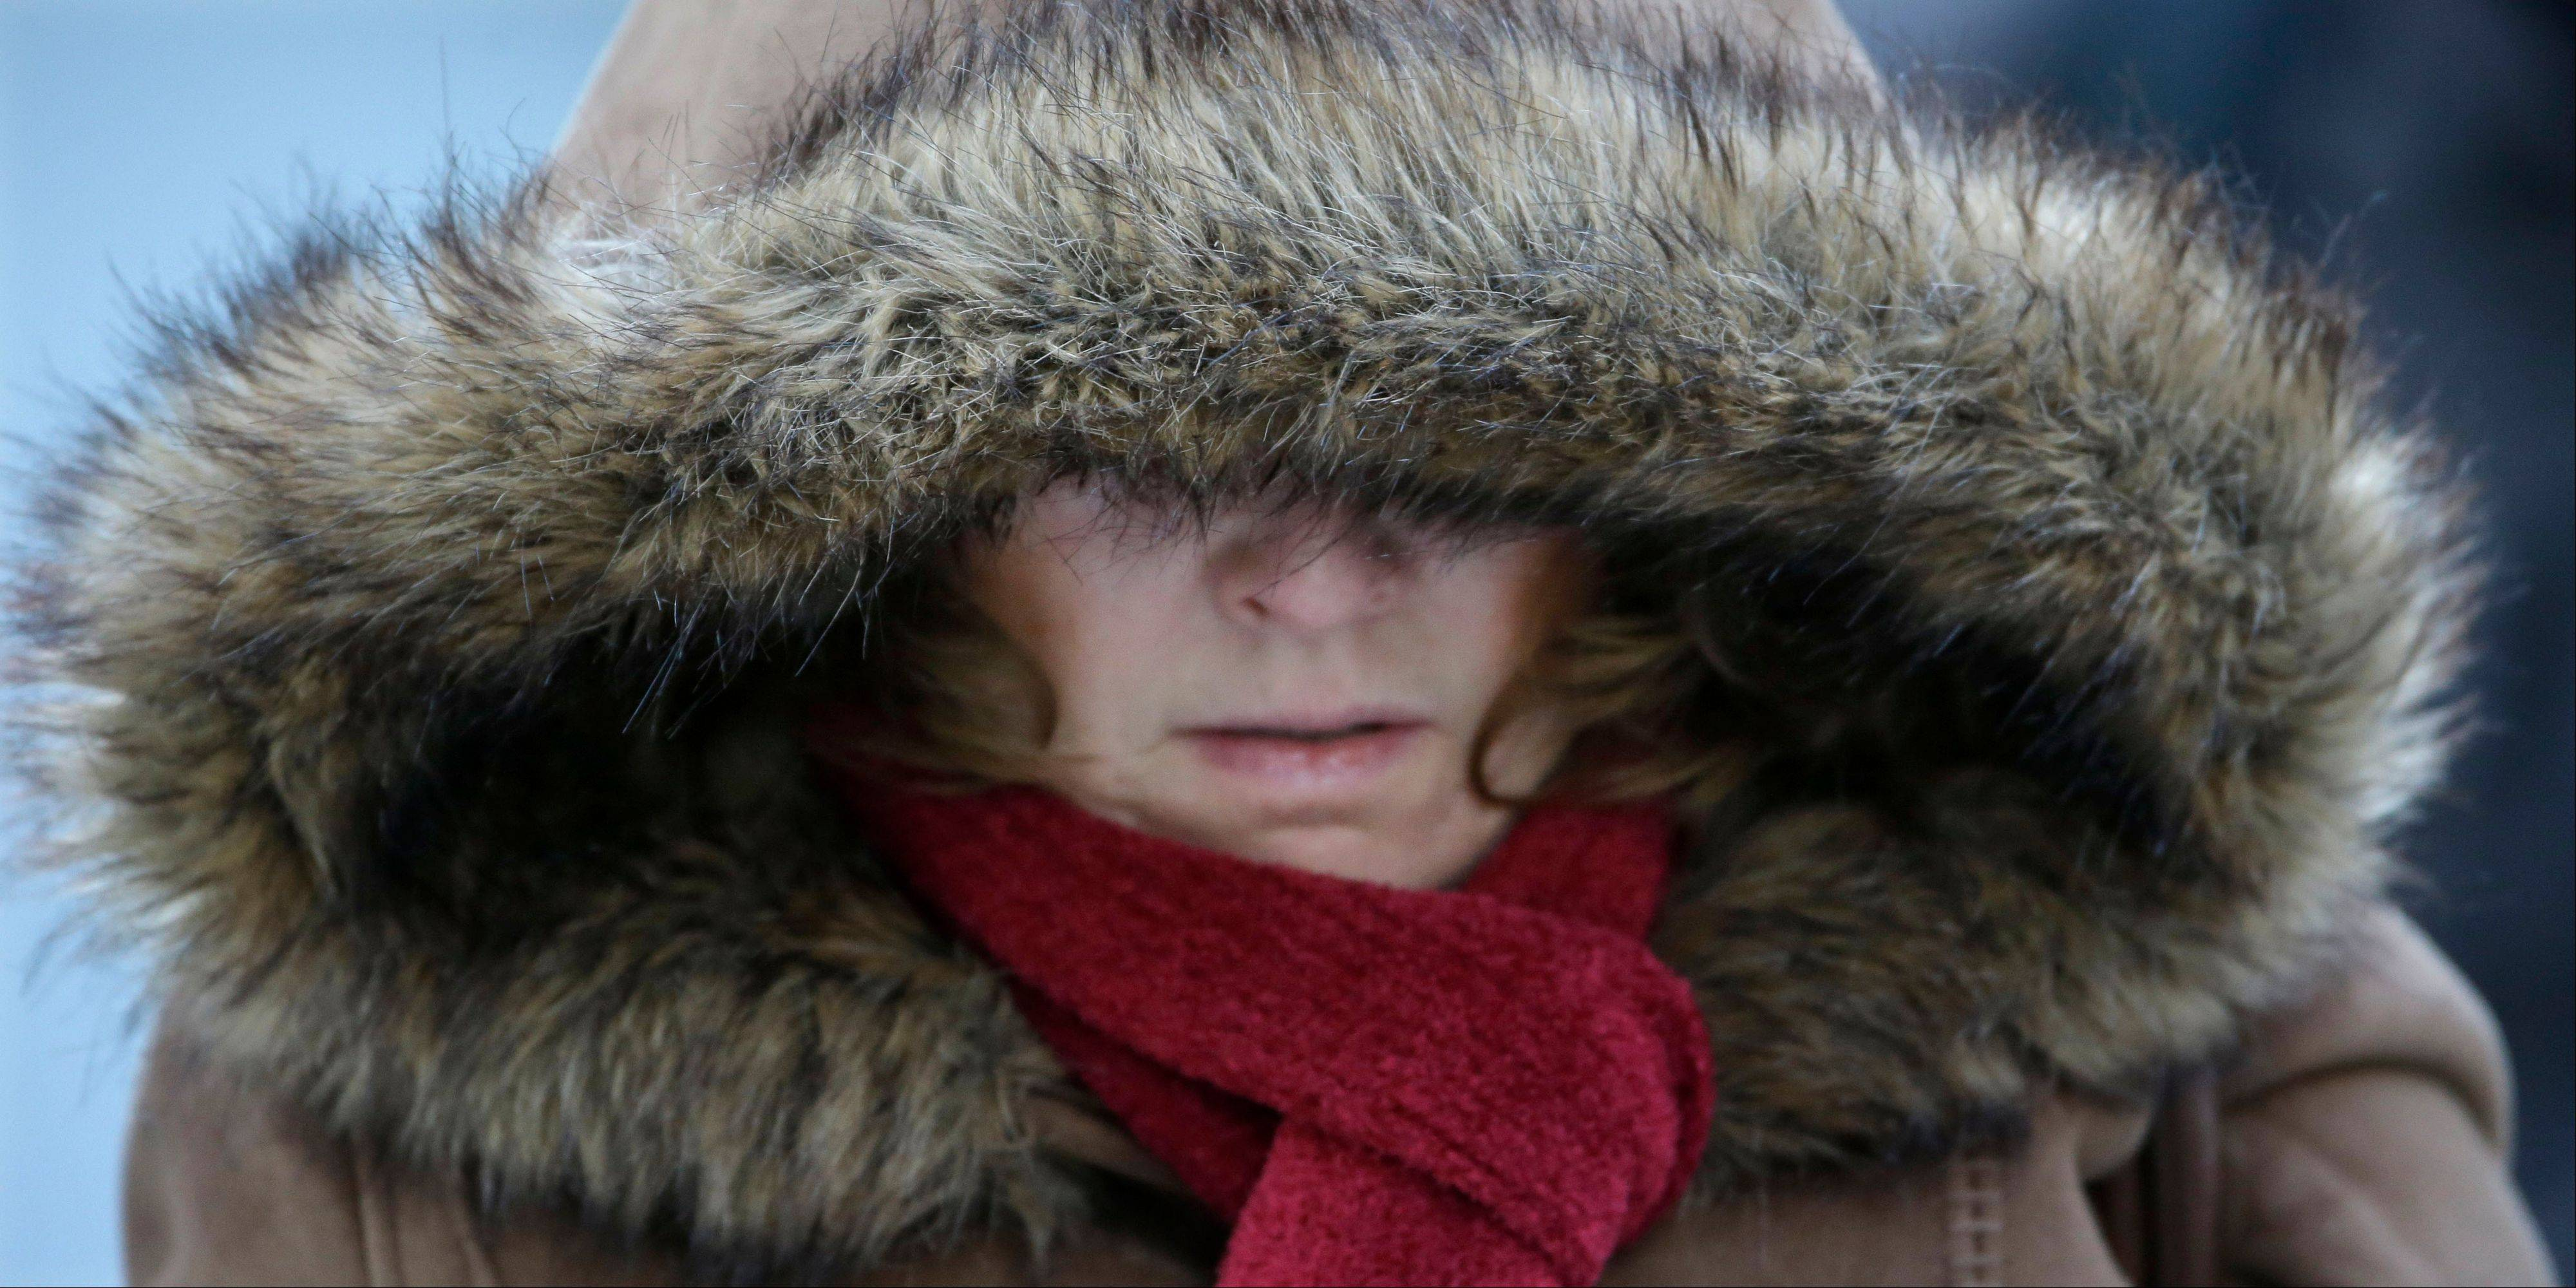 A commuter bundles up against extreme cold conditions Tuesday, Jan. 22, 2013, in Chicago.